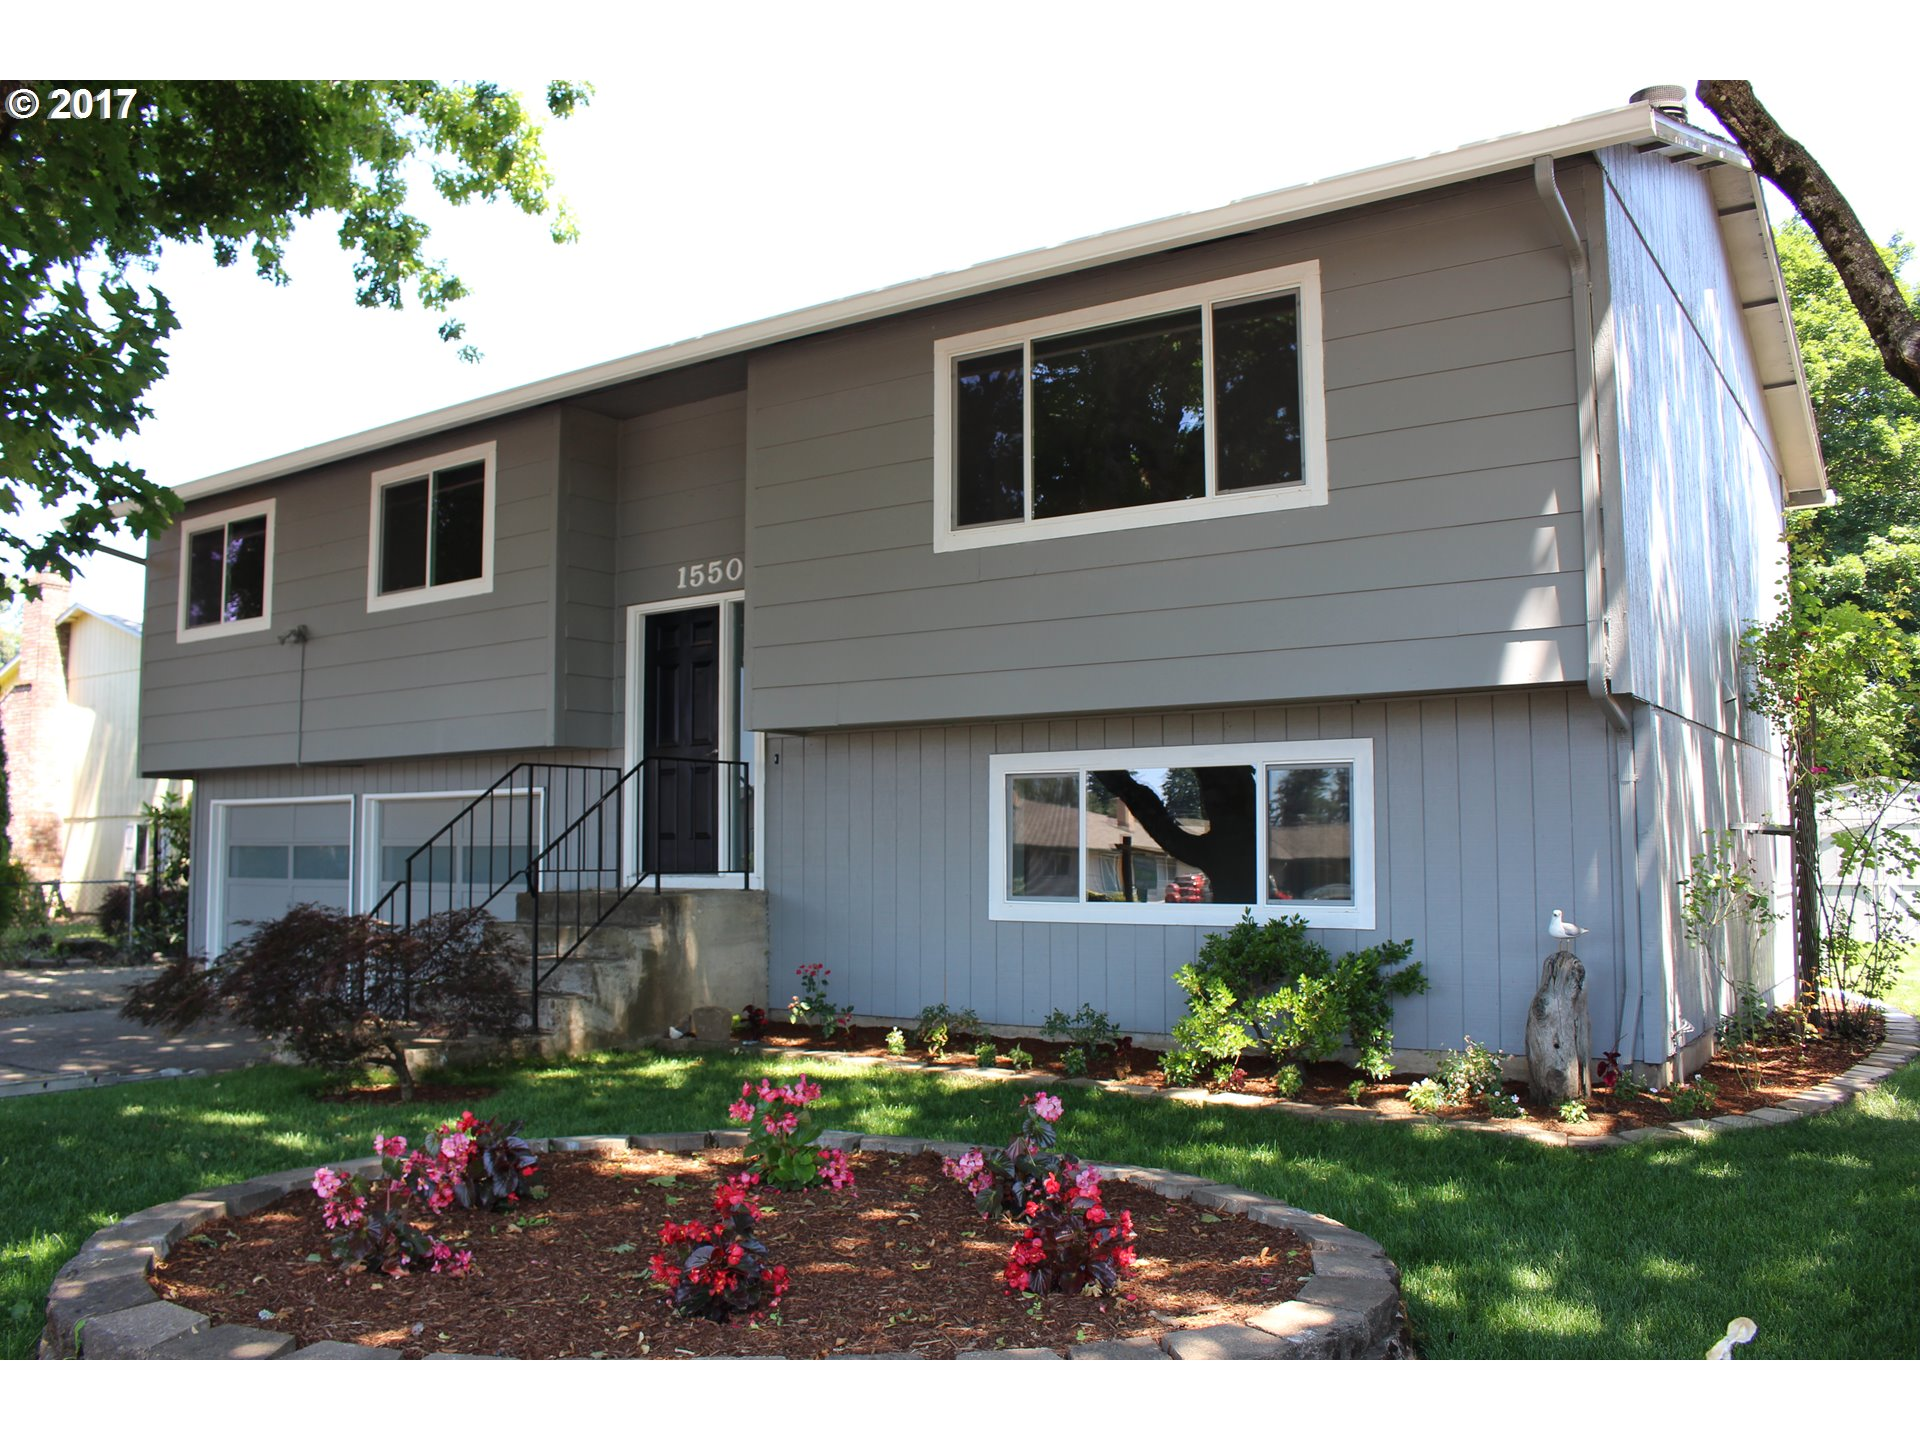 1550 N MAPLE ST, Canby, OR 97013